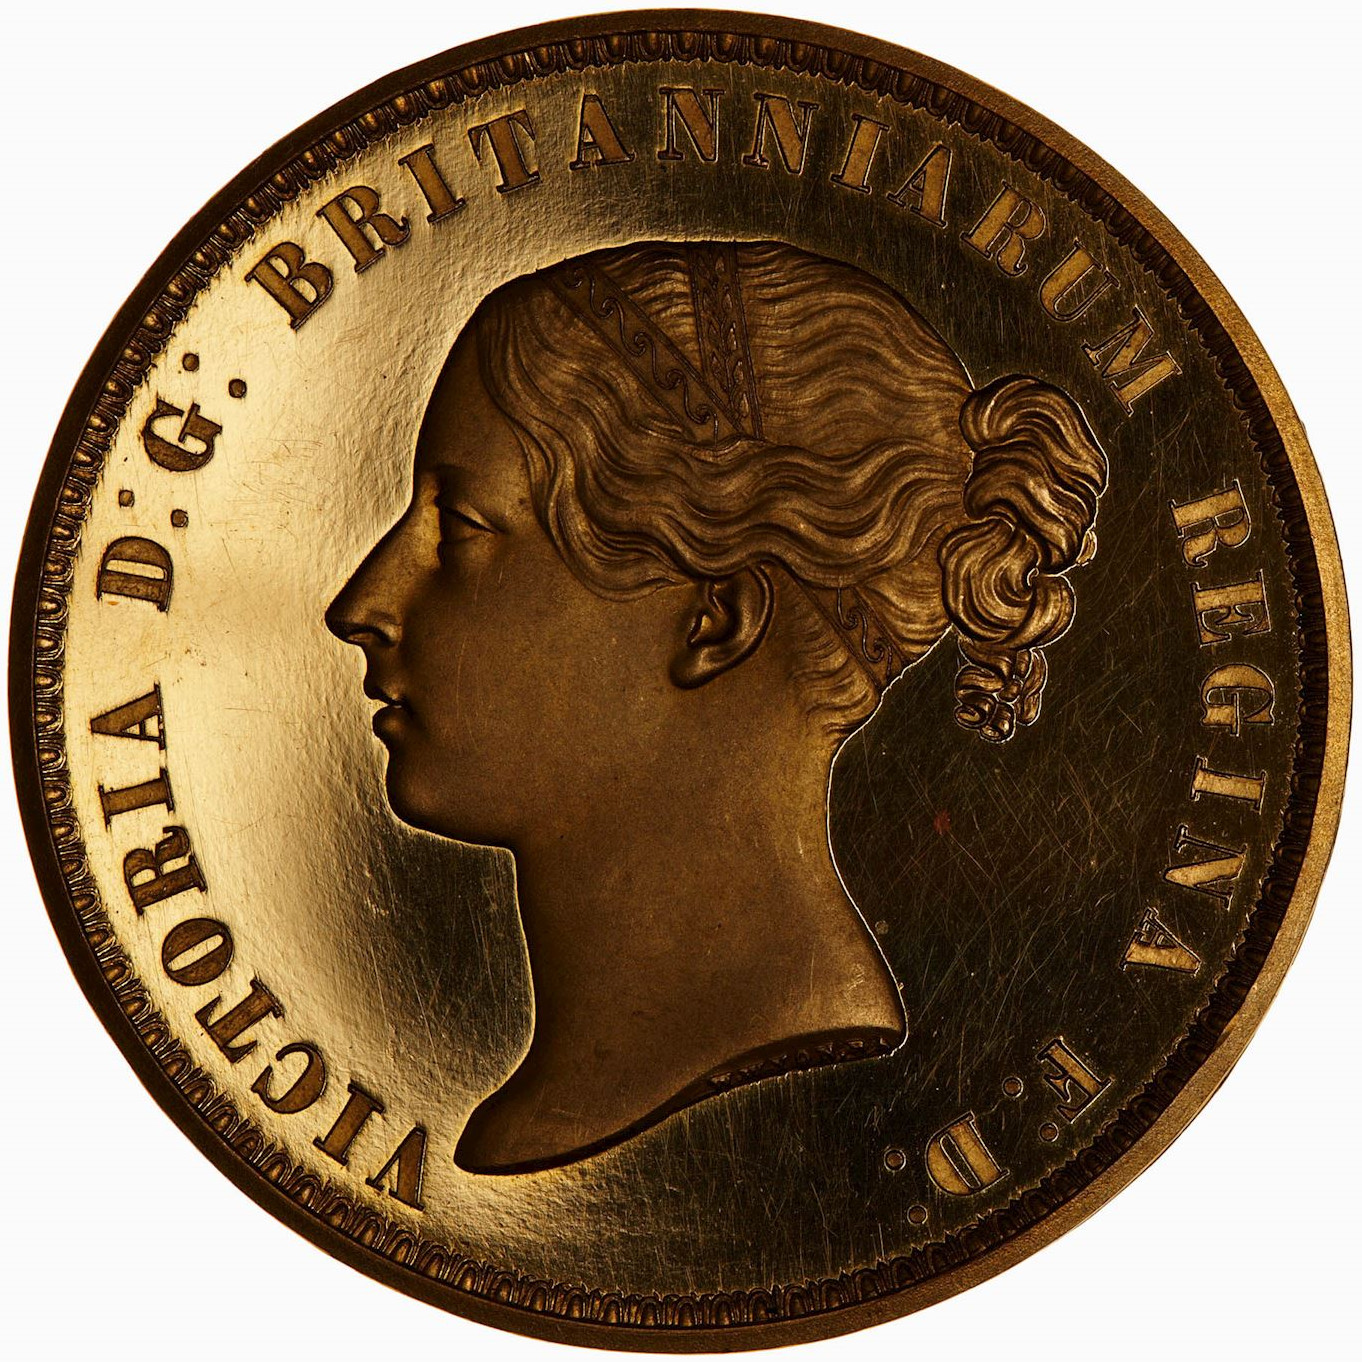 Five Pounds (Pre-decimal): Photo Pattern Coin - 5 Pounds, Queen Victoria, Great Britain, 1839